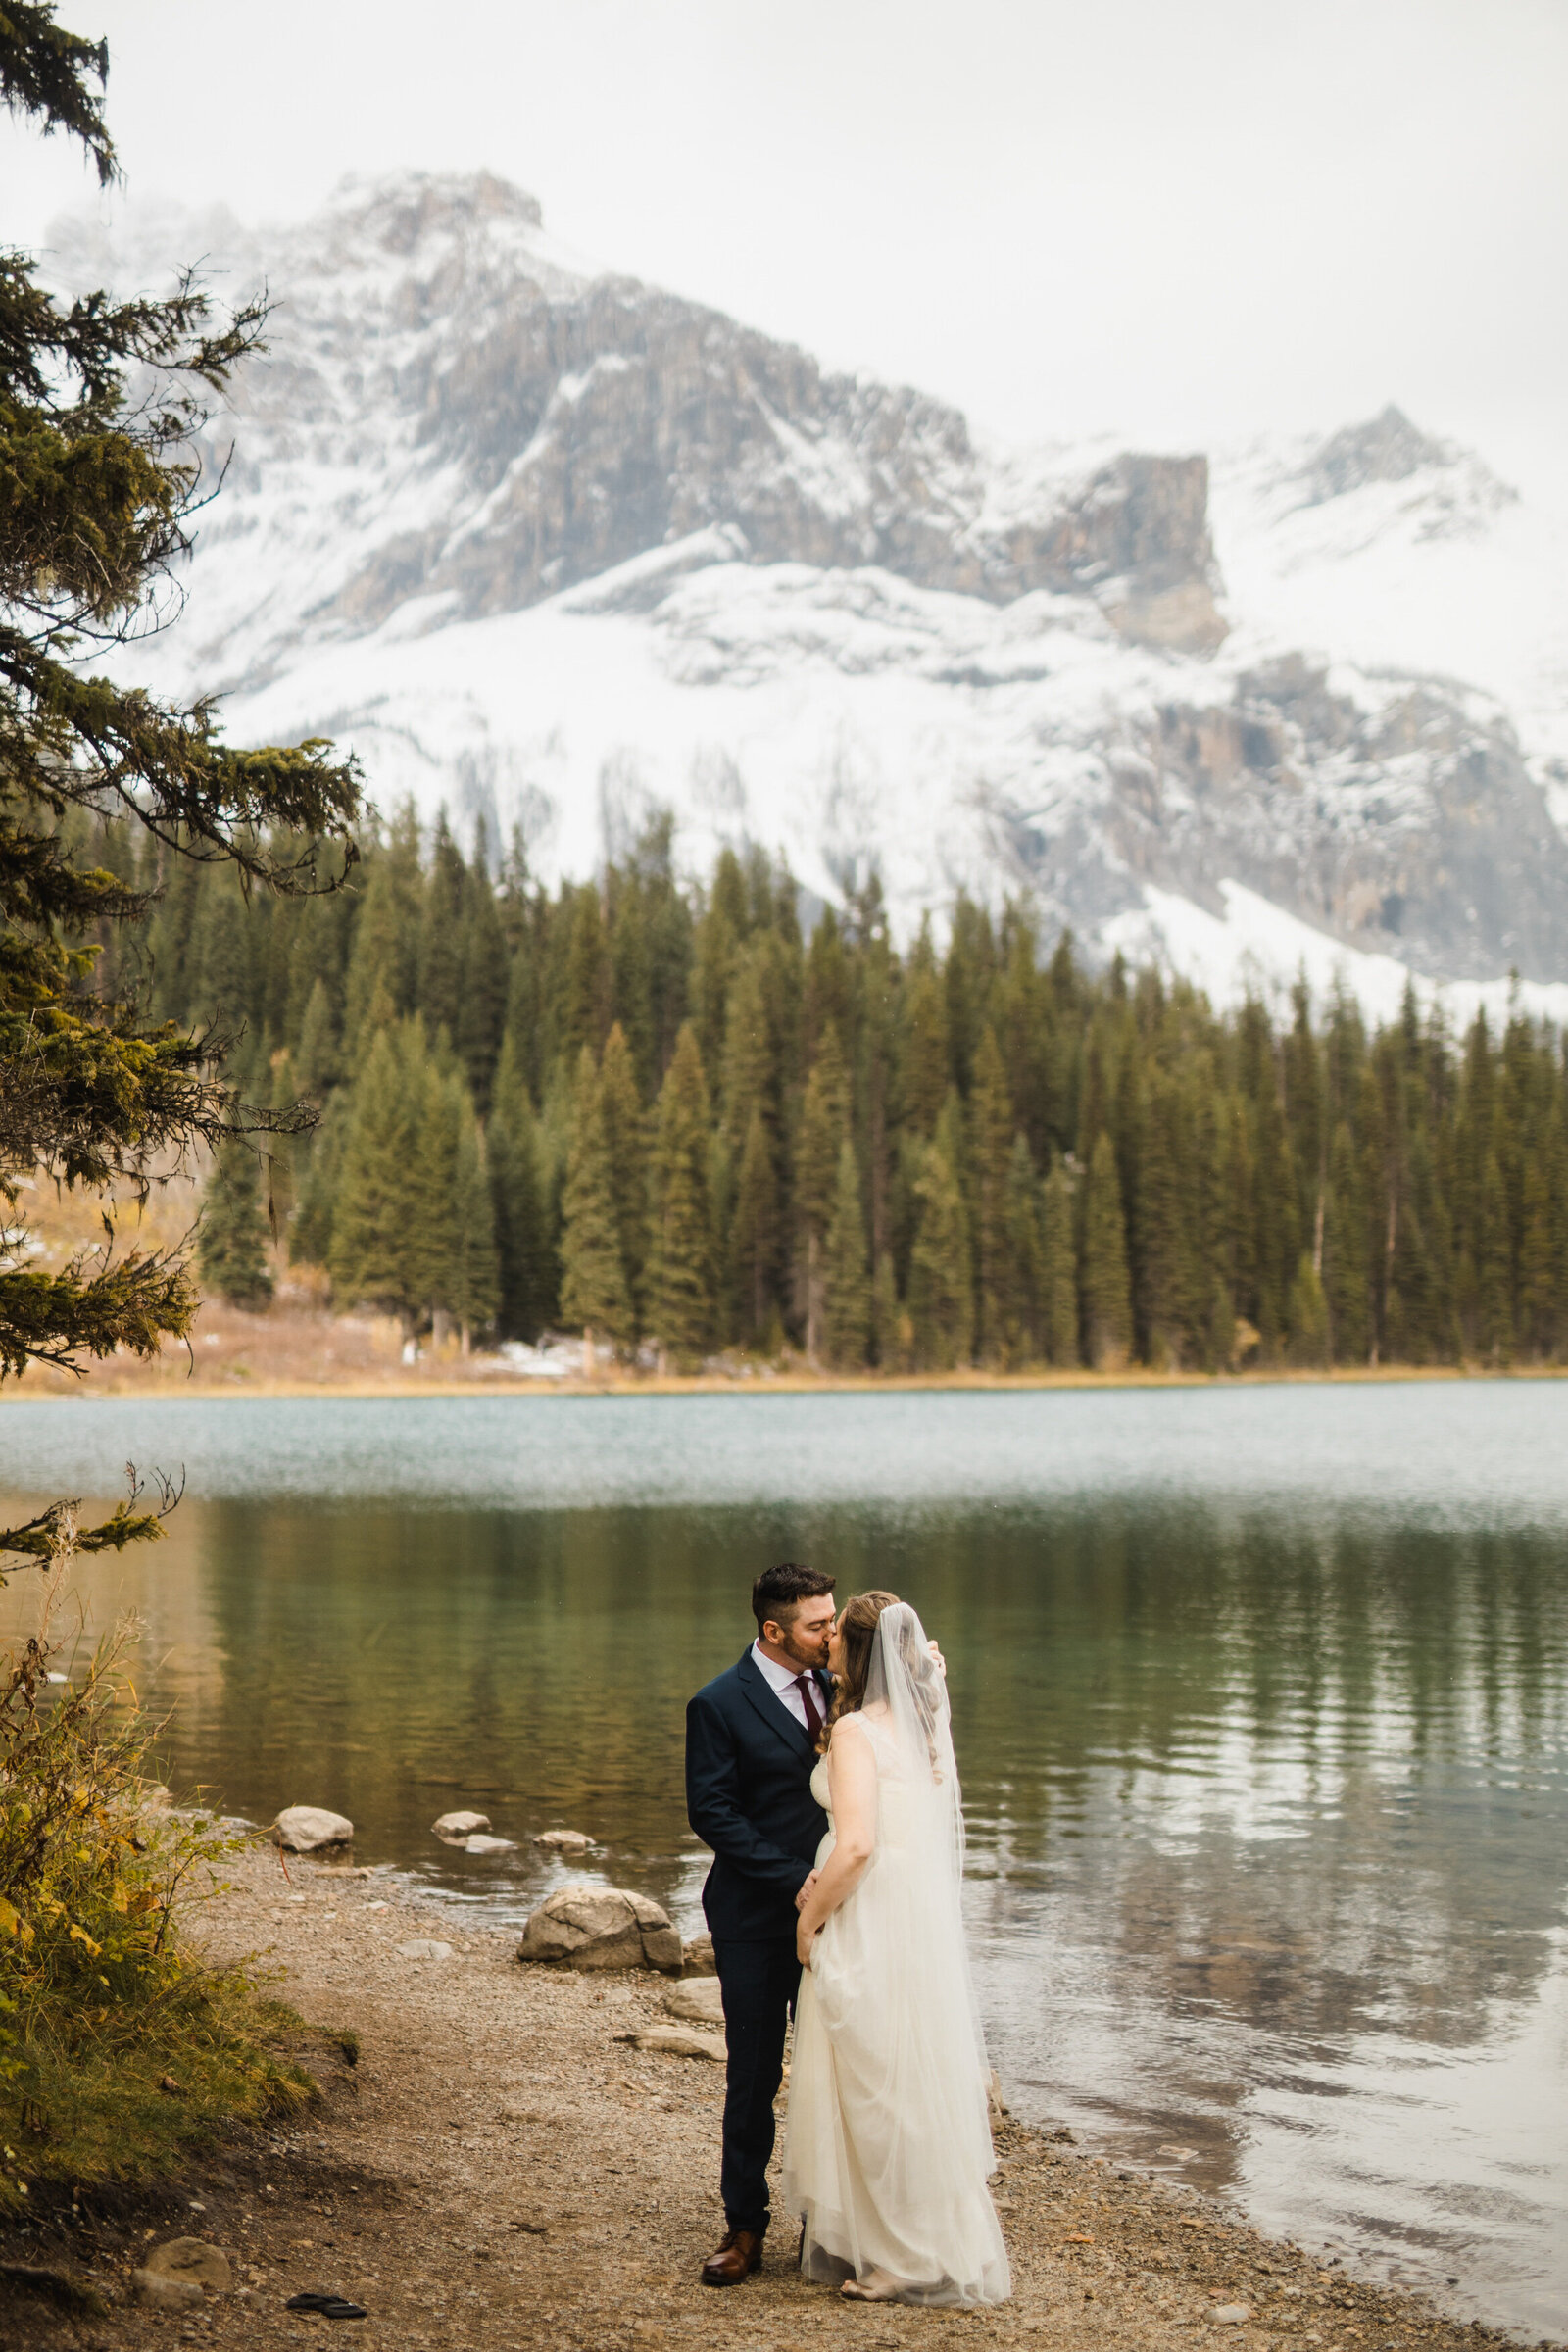 banff.wedding.photographer--23-1